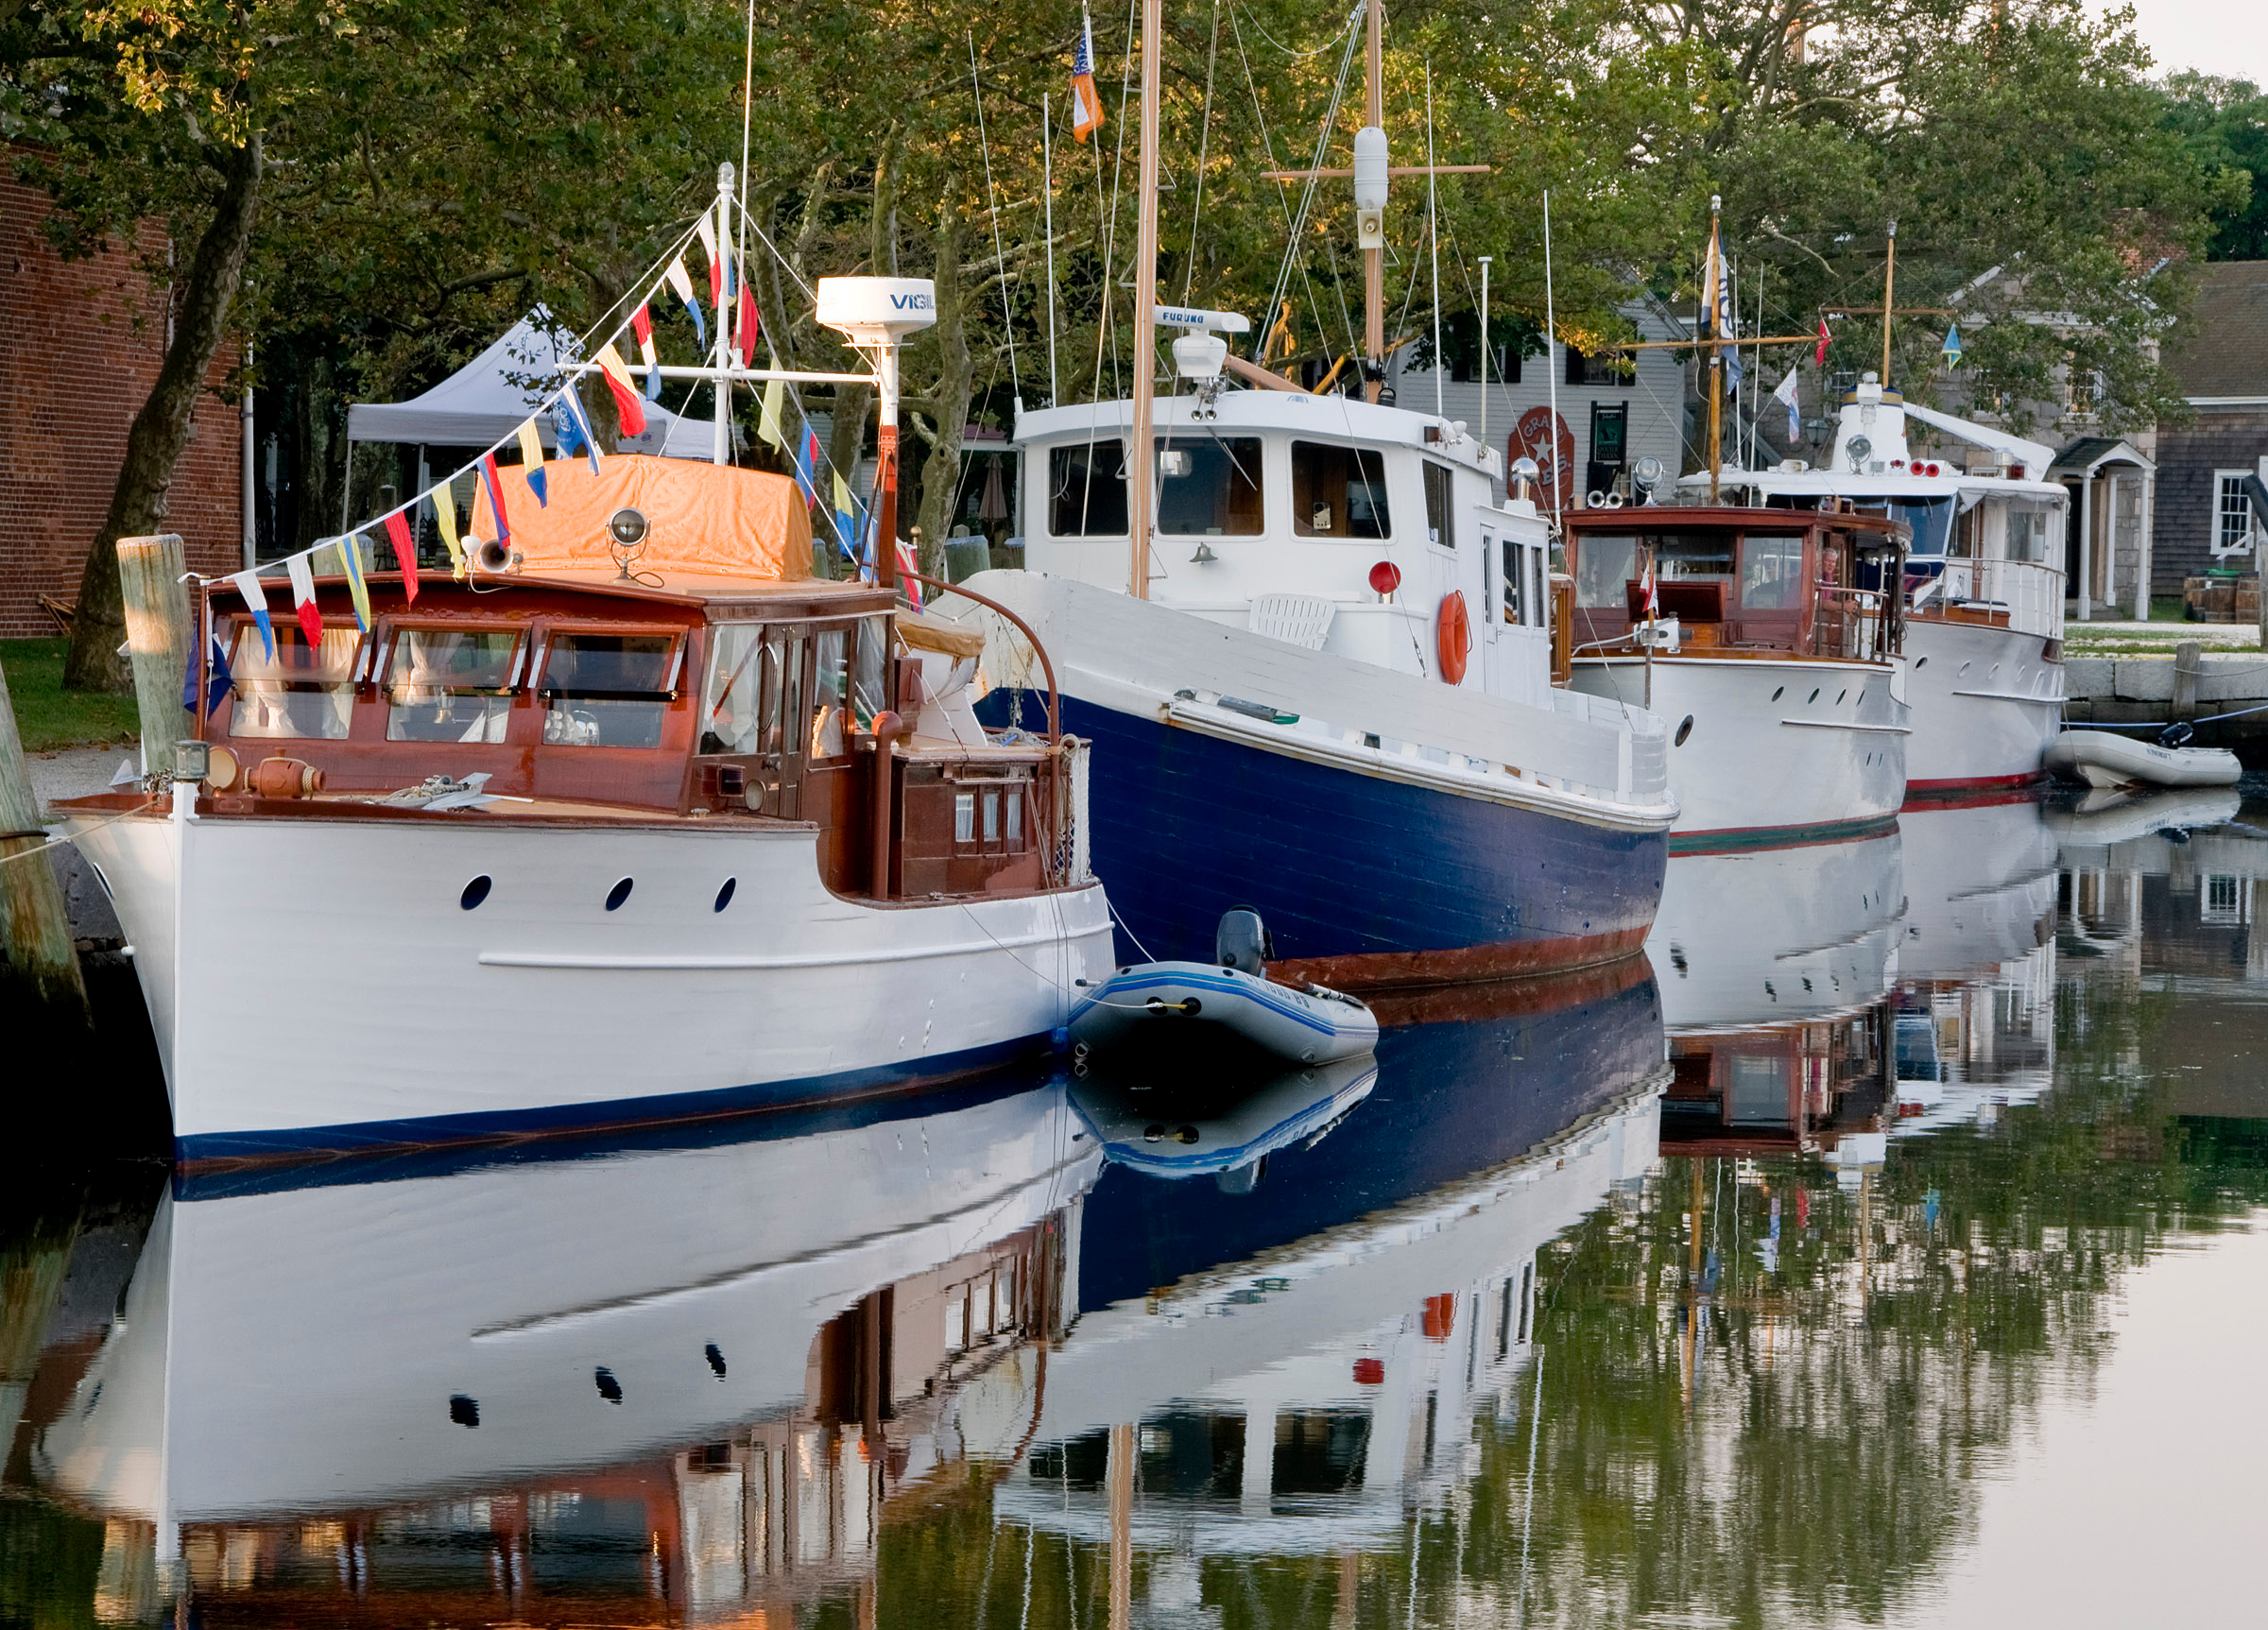 Mystic Seaport Museum to Host Annual Antique & Classic Boat Rendezvous July 27 & 28